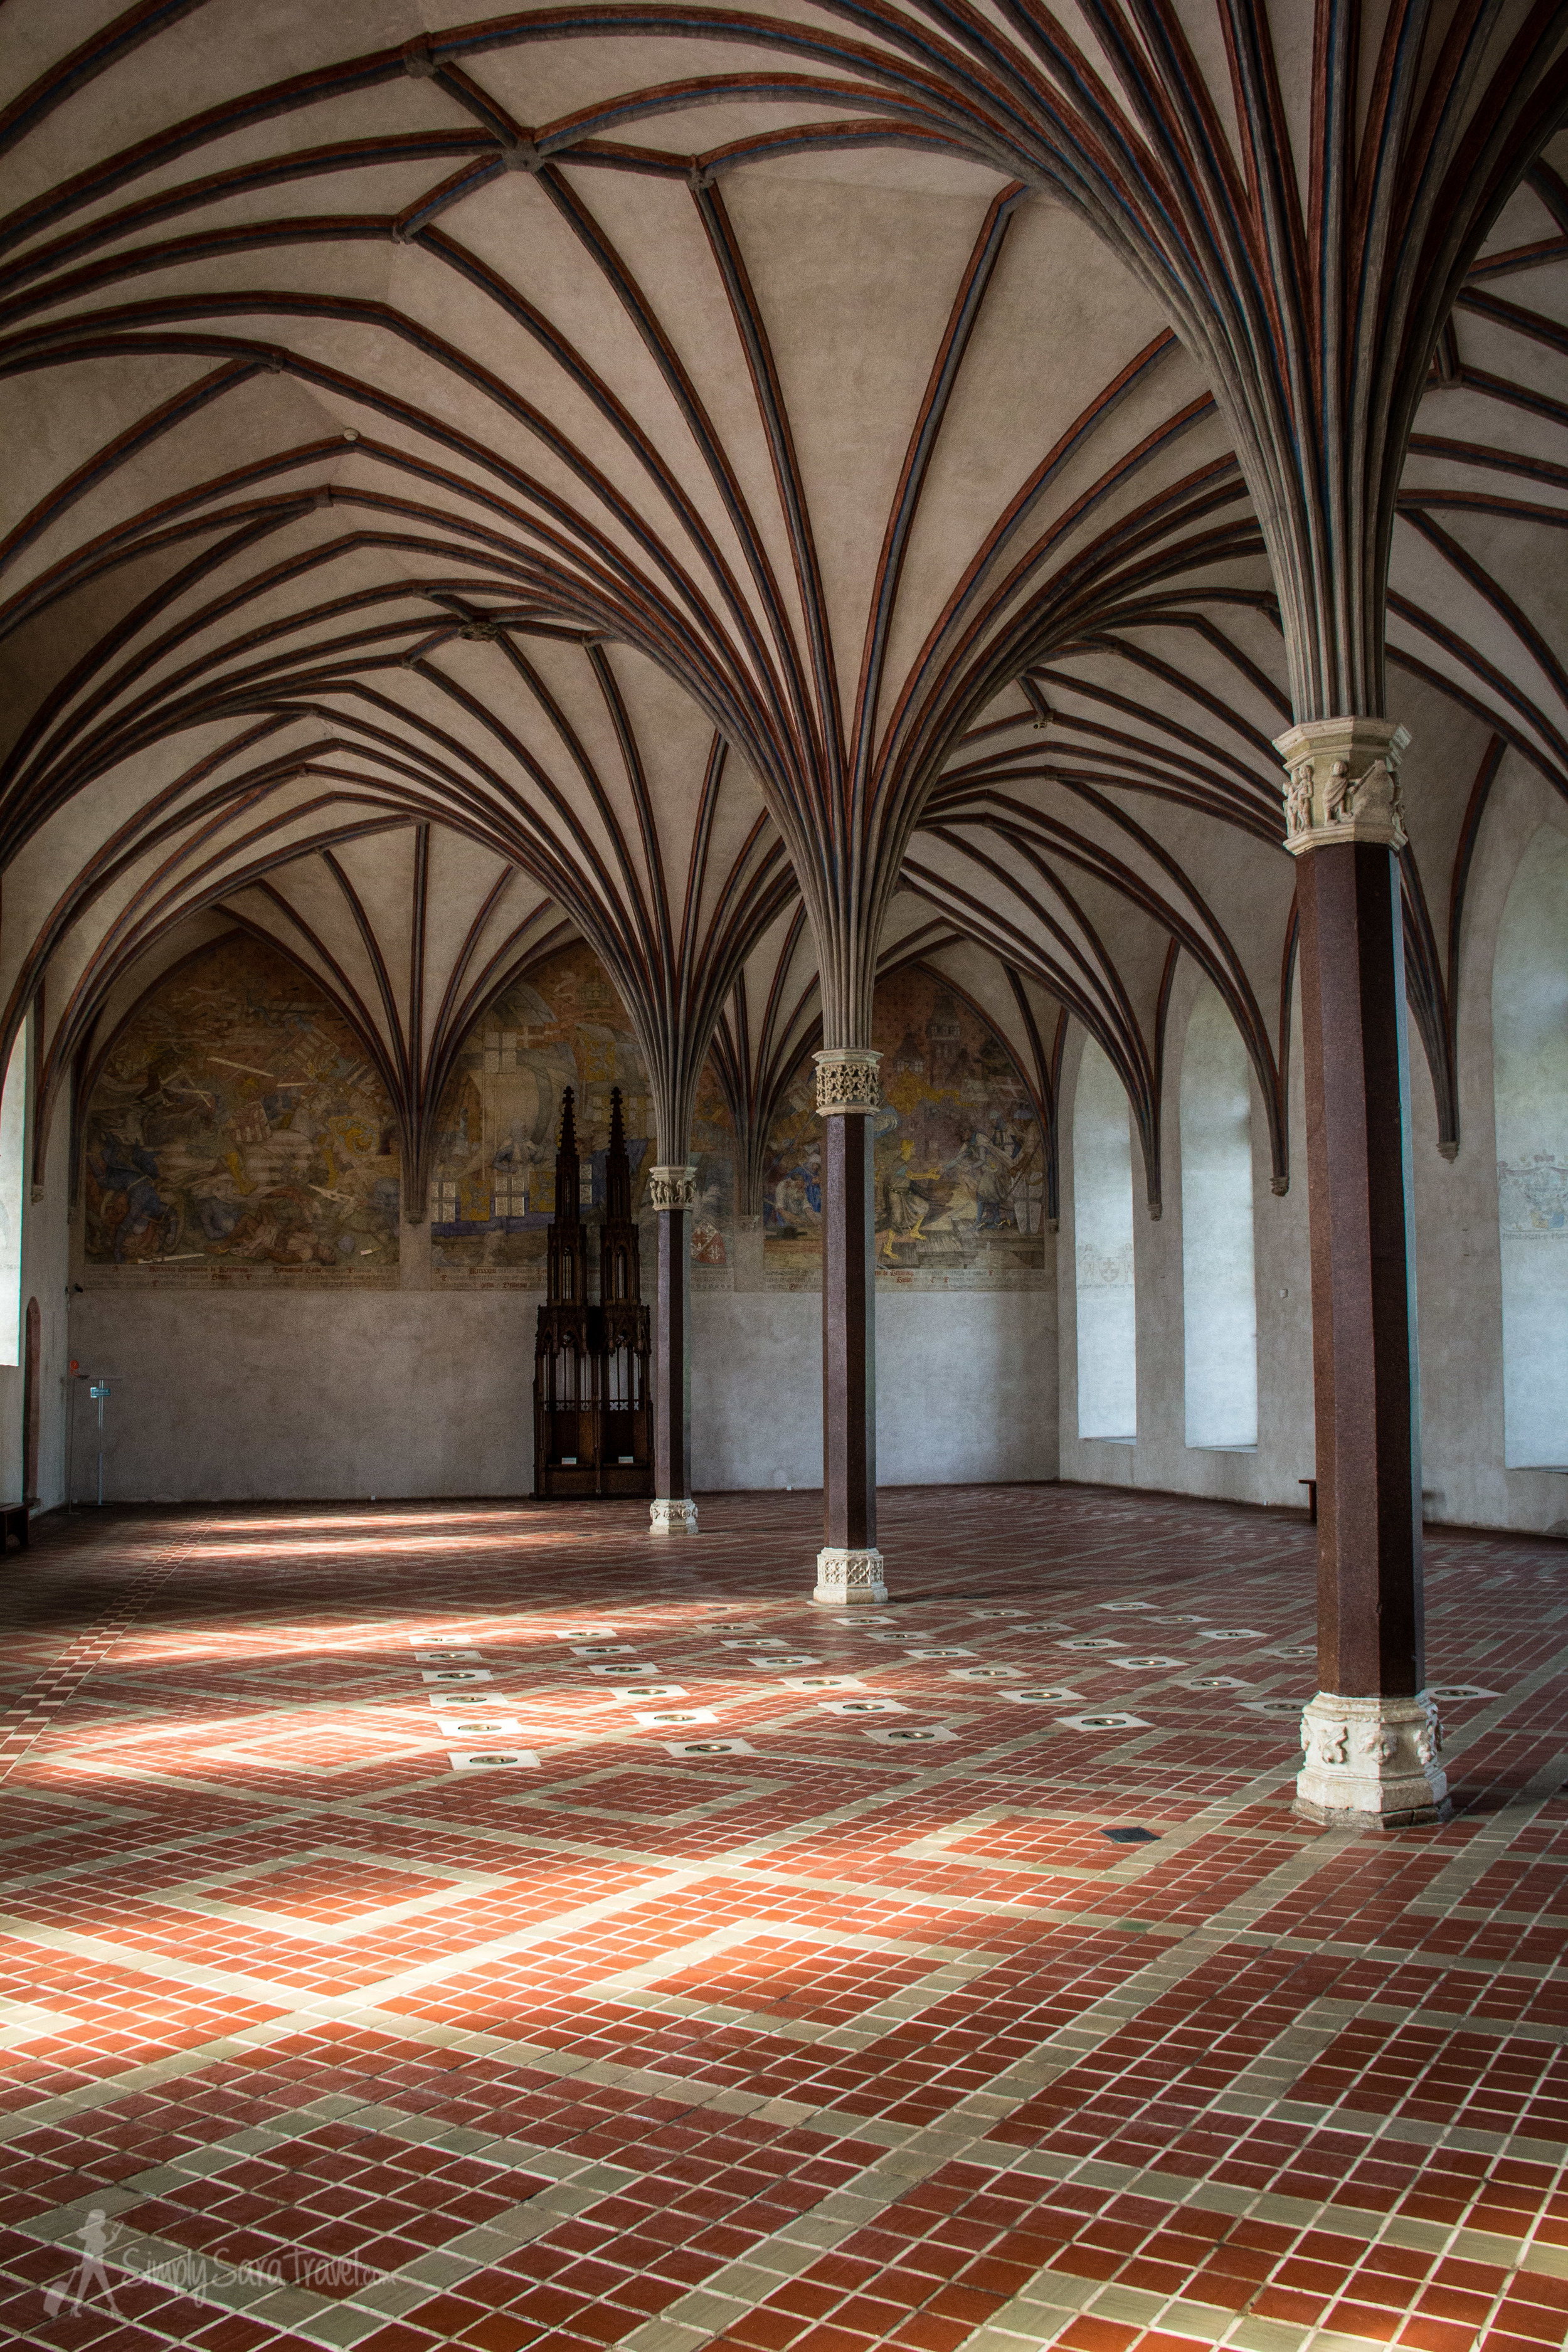 Inside the Grand Refectory of Malbork Castle, designed to hold banquets for up to 400 guests.